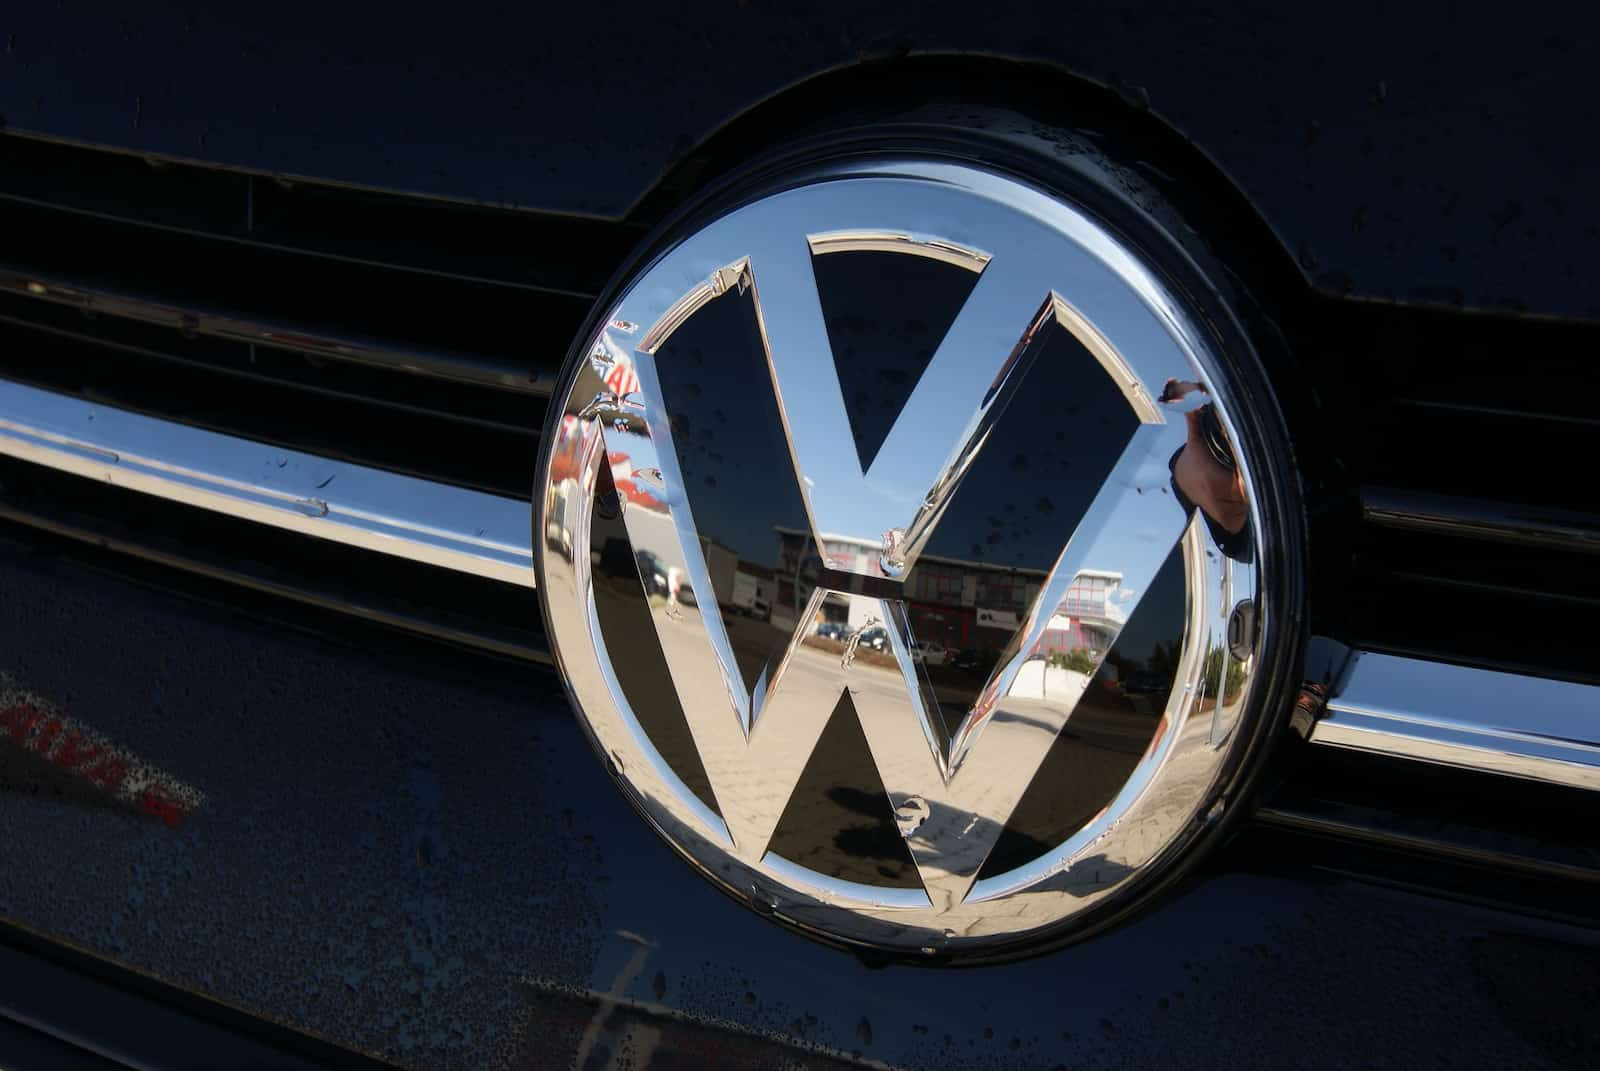 The Volkswagen logo is displayed but you should look beyond the brand when you buy a motor and compare car insurance quotes for the model you like